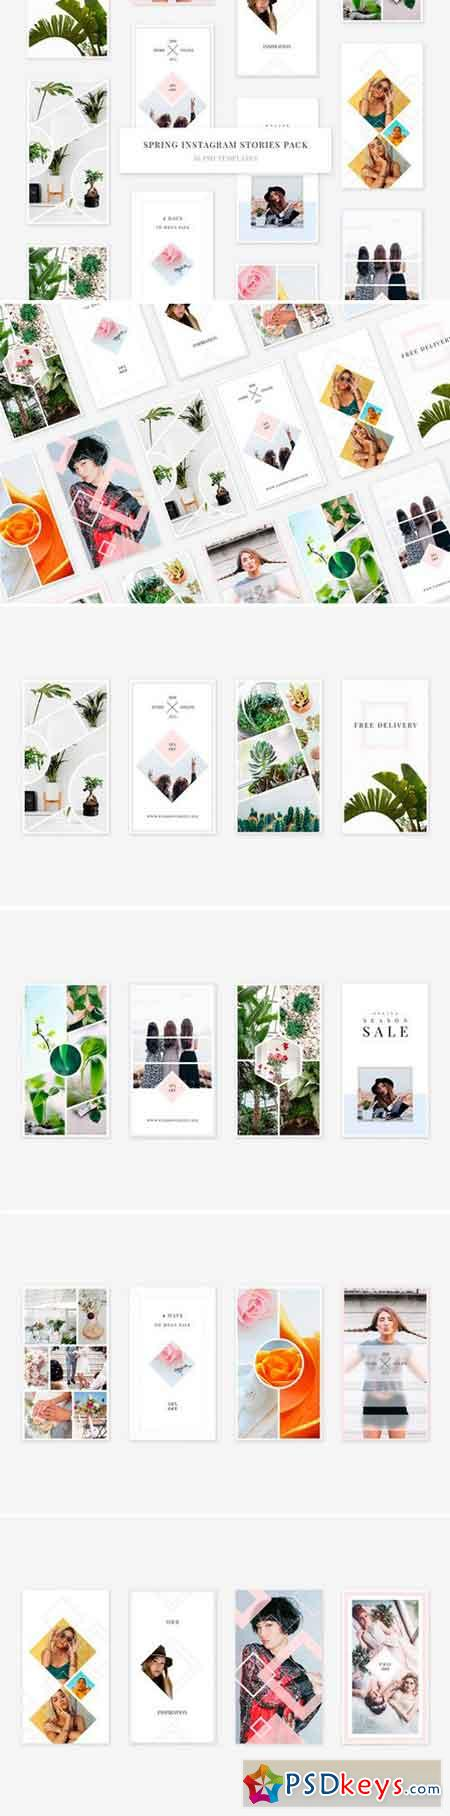 Spring Instagram Stories Pack 2488723